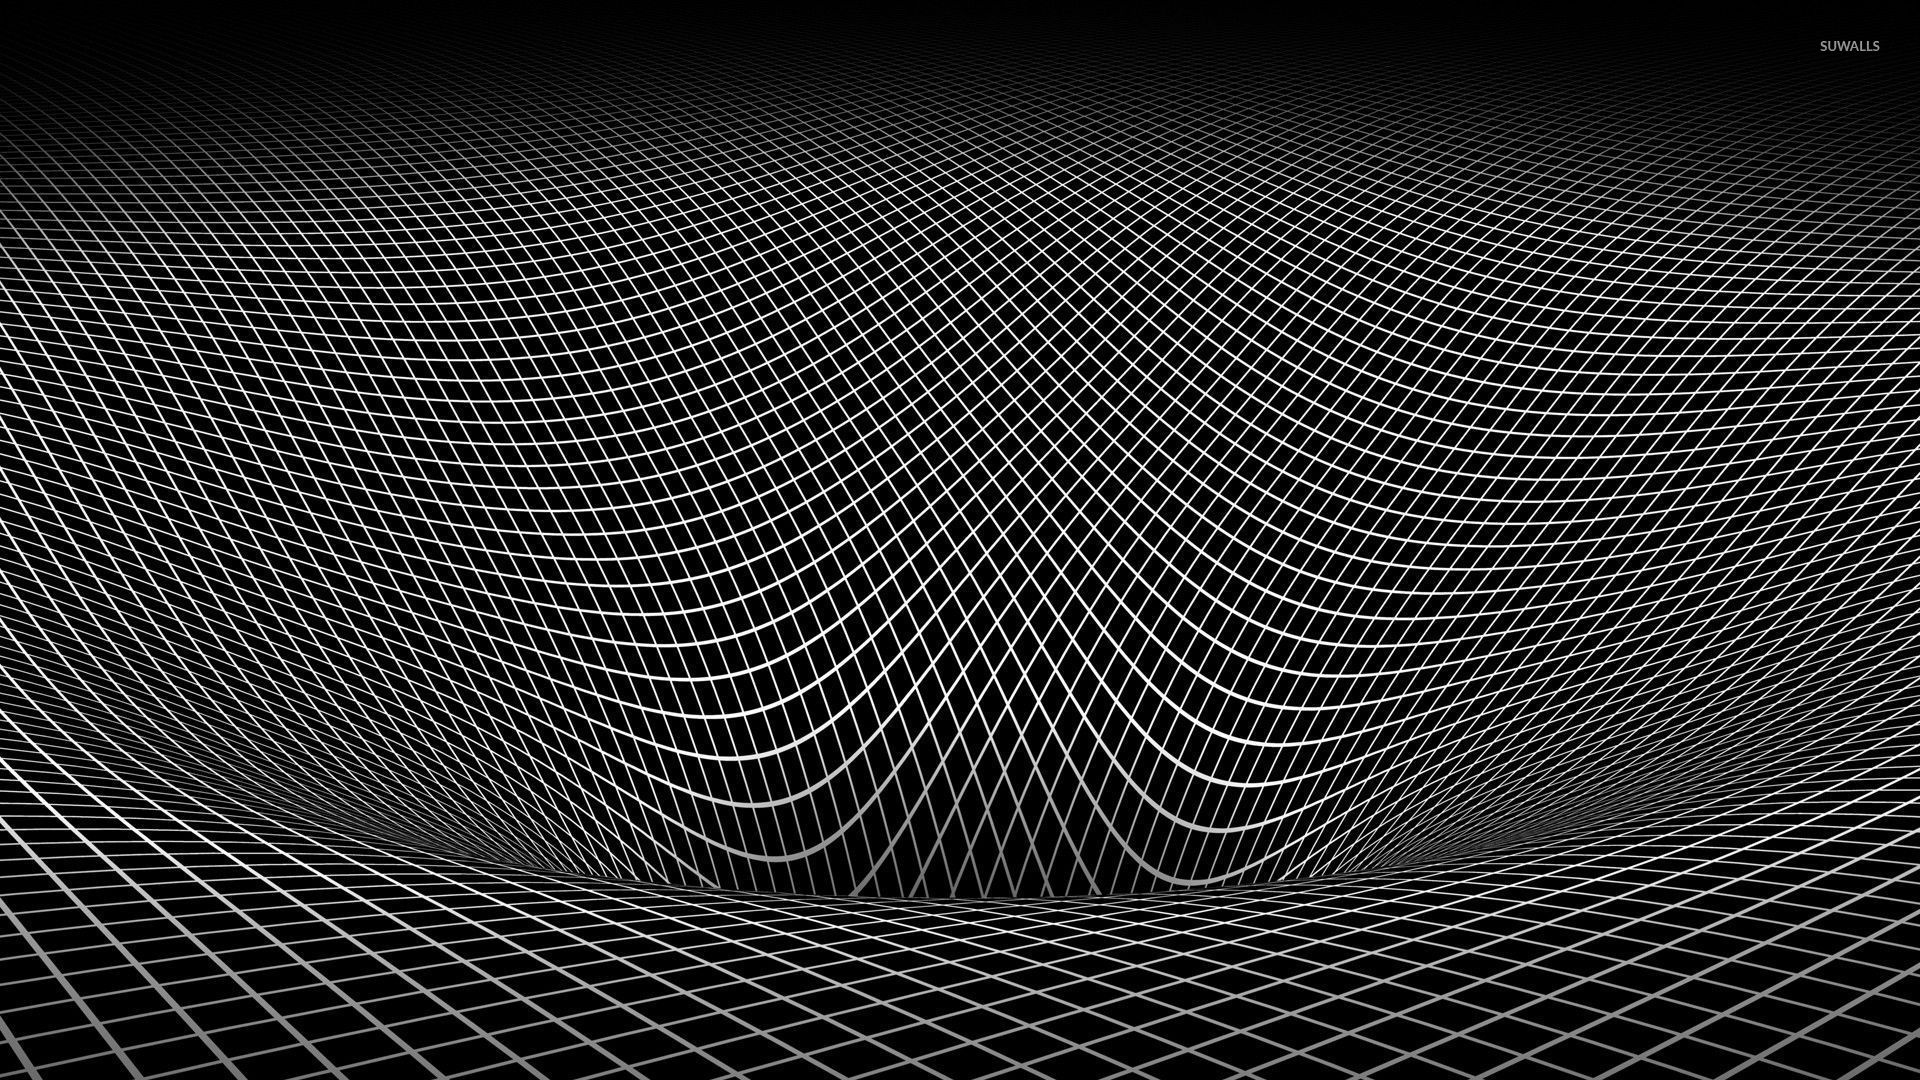 Wallpaper download abyss - Square Pattern Falling Into The Abyss Wallpaper